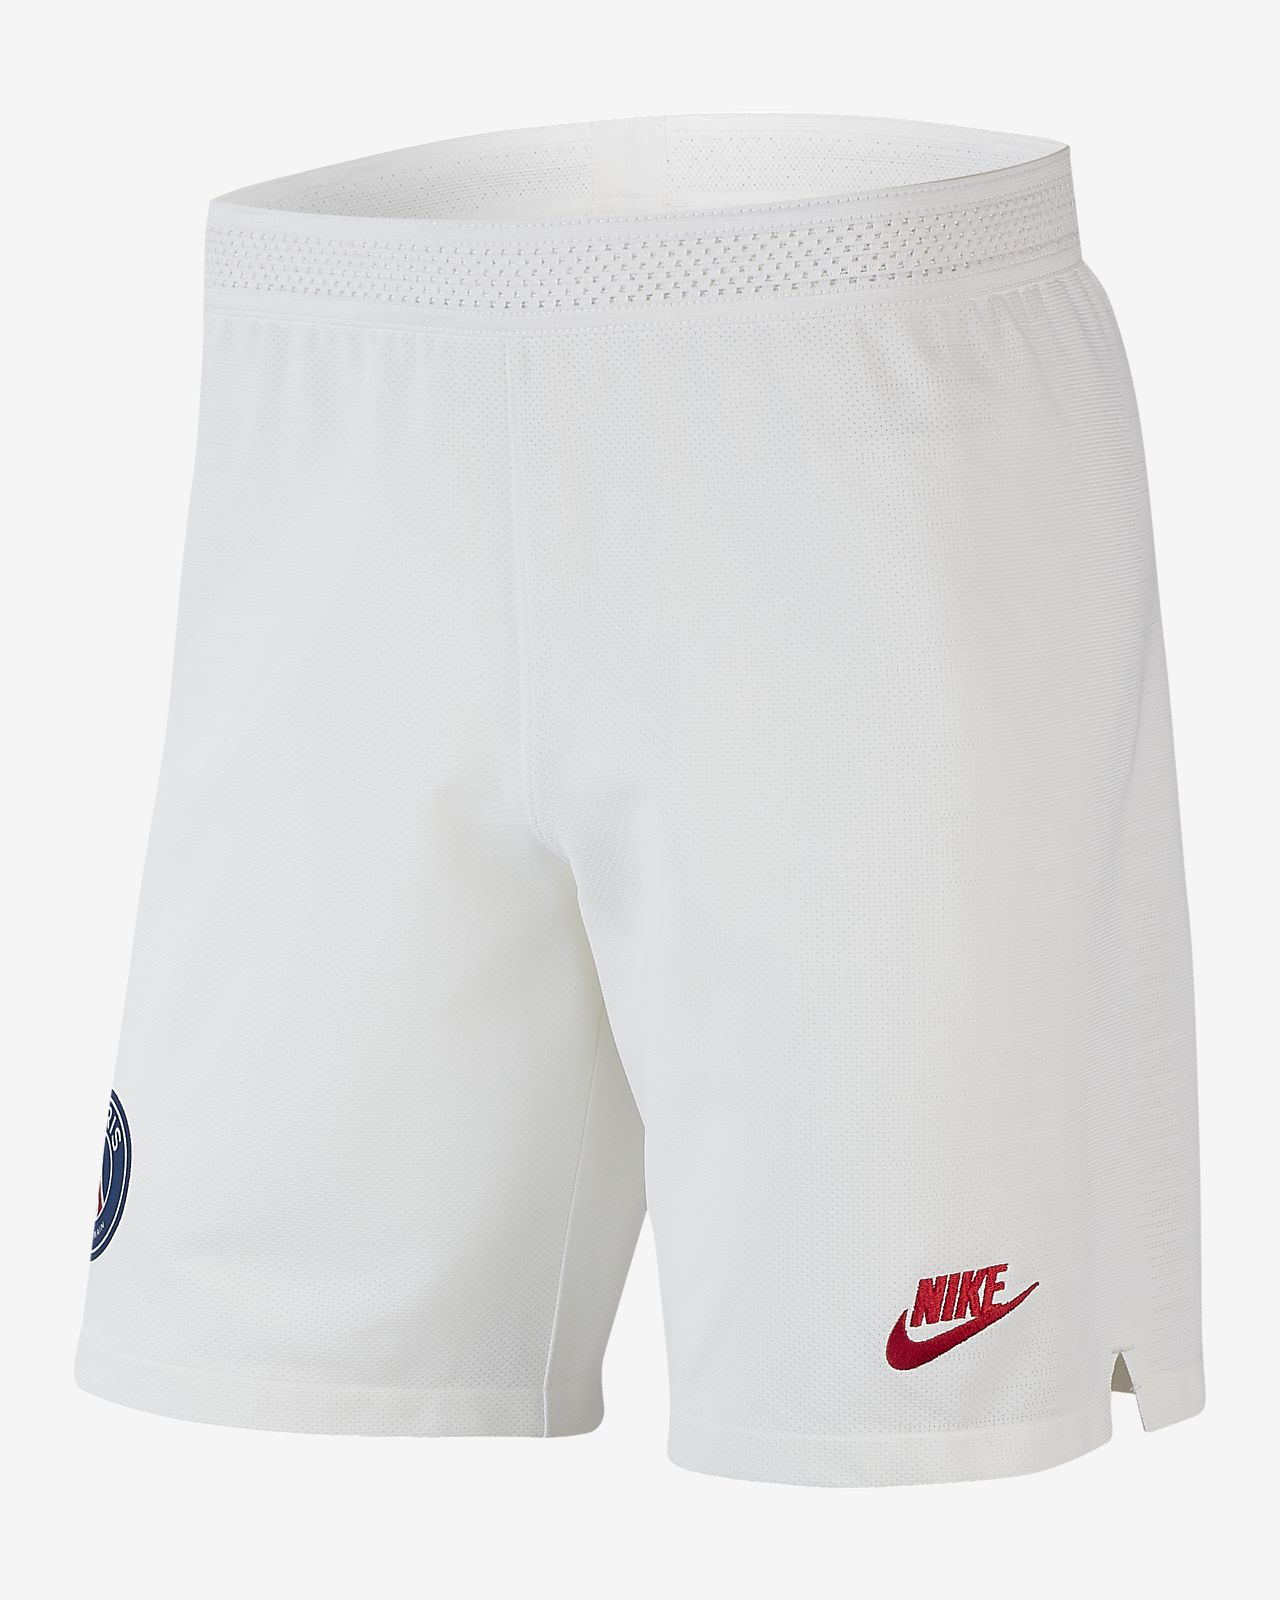 Shorts alternativos de fútbol para hombre Vapor Match 2019/20 del Paris Saint-Germain